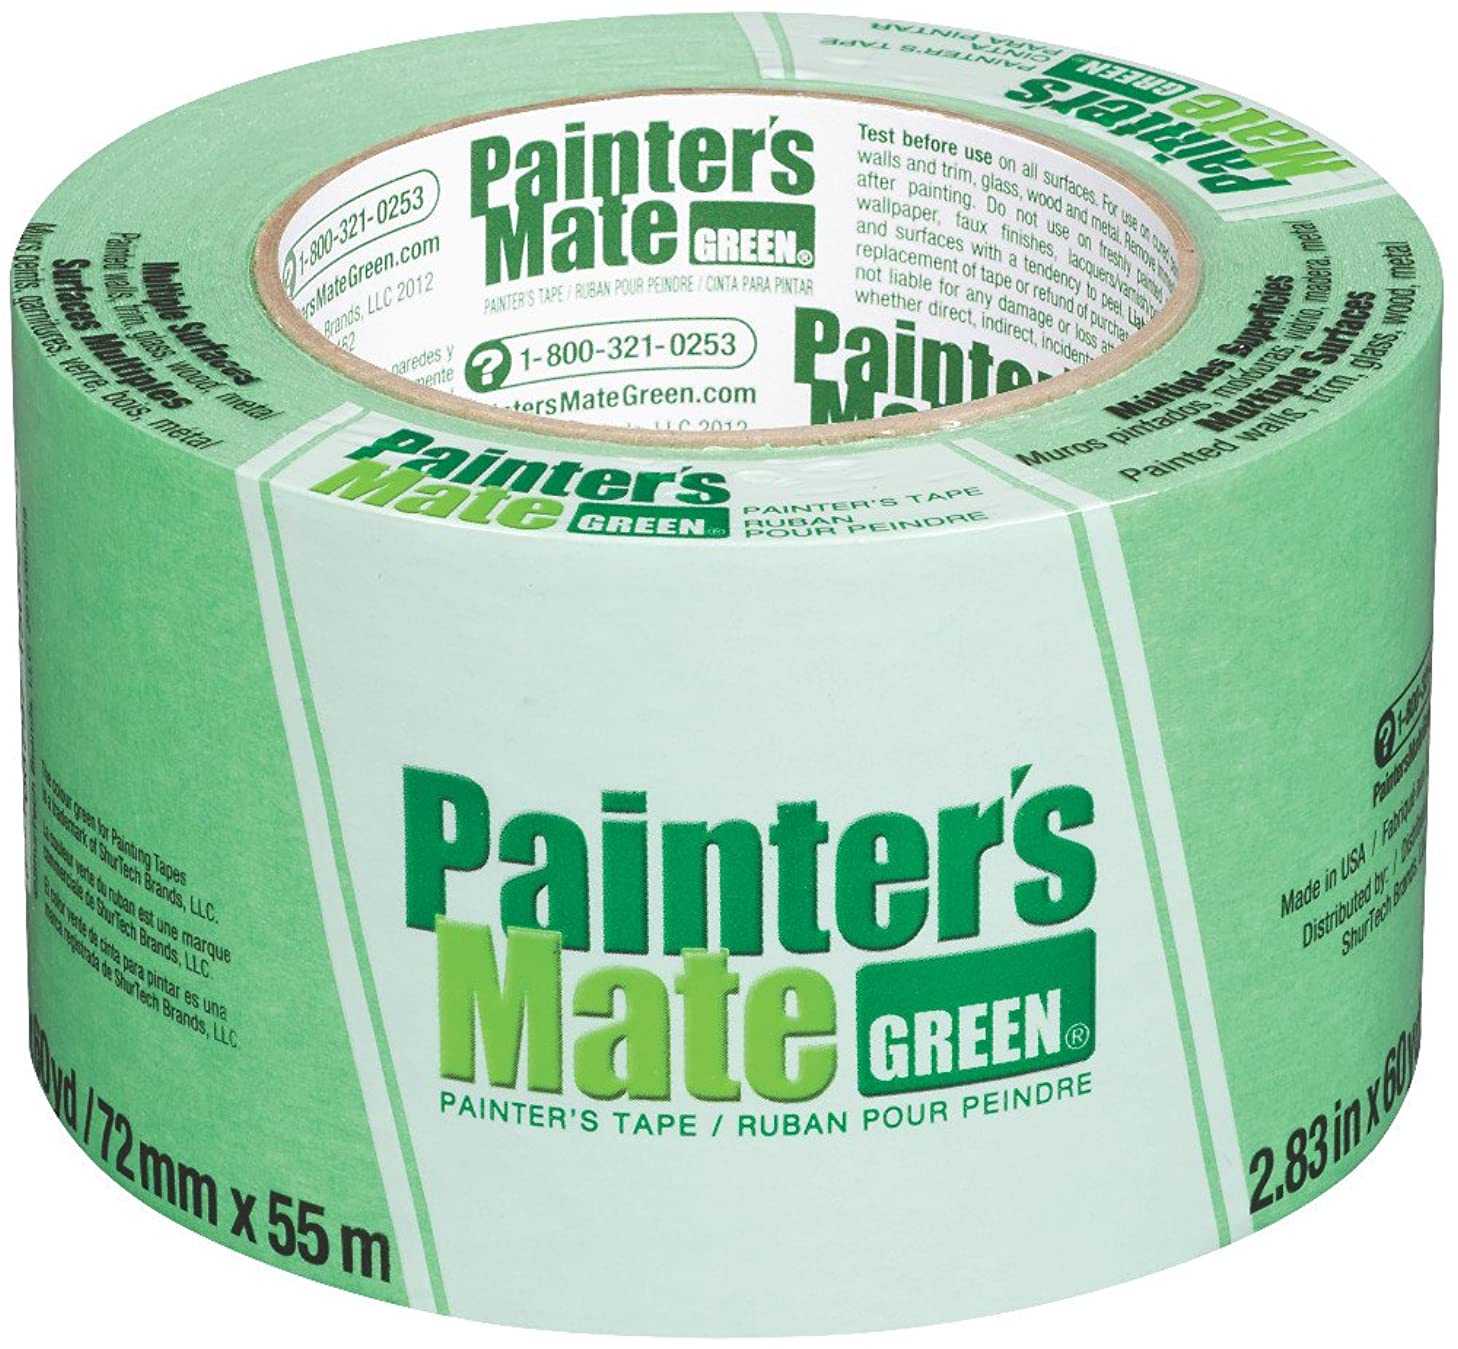 Painter's Mate Green Brand CP 150/8-Day Painter's Tape, Multi-Surface, 72mm x 55m, Green, 1 Roll (103364)